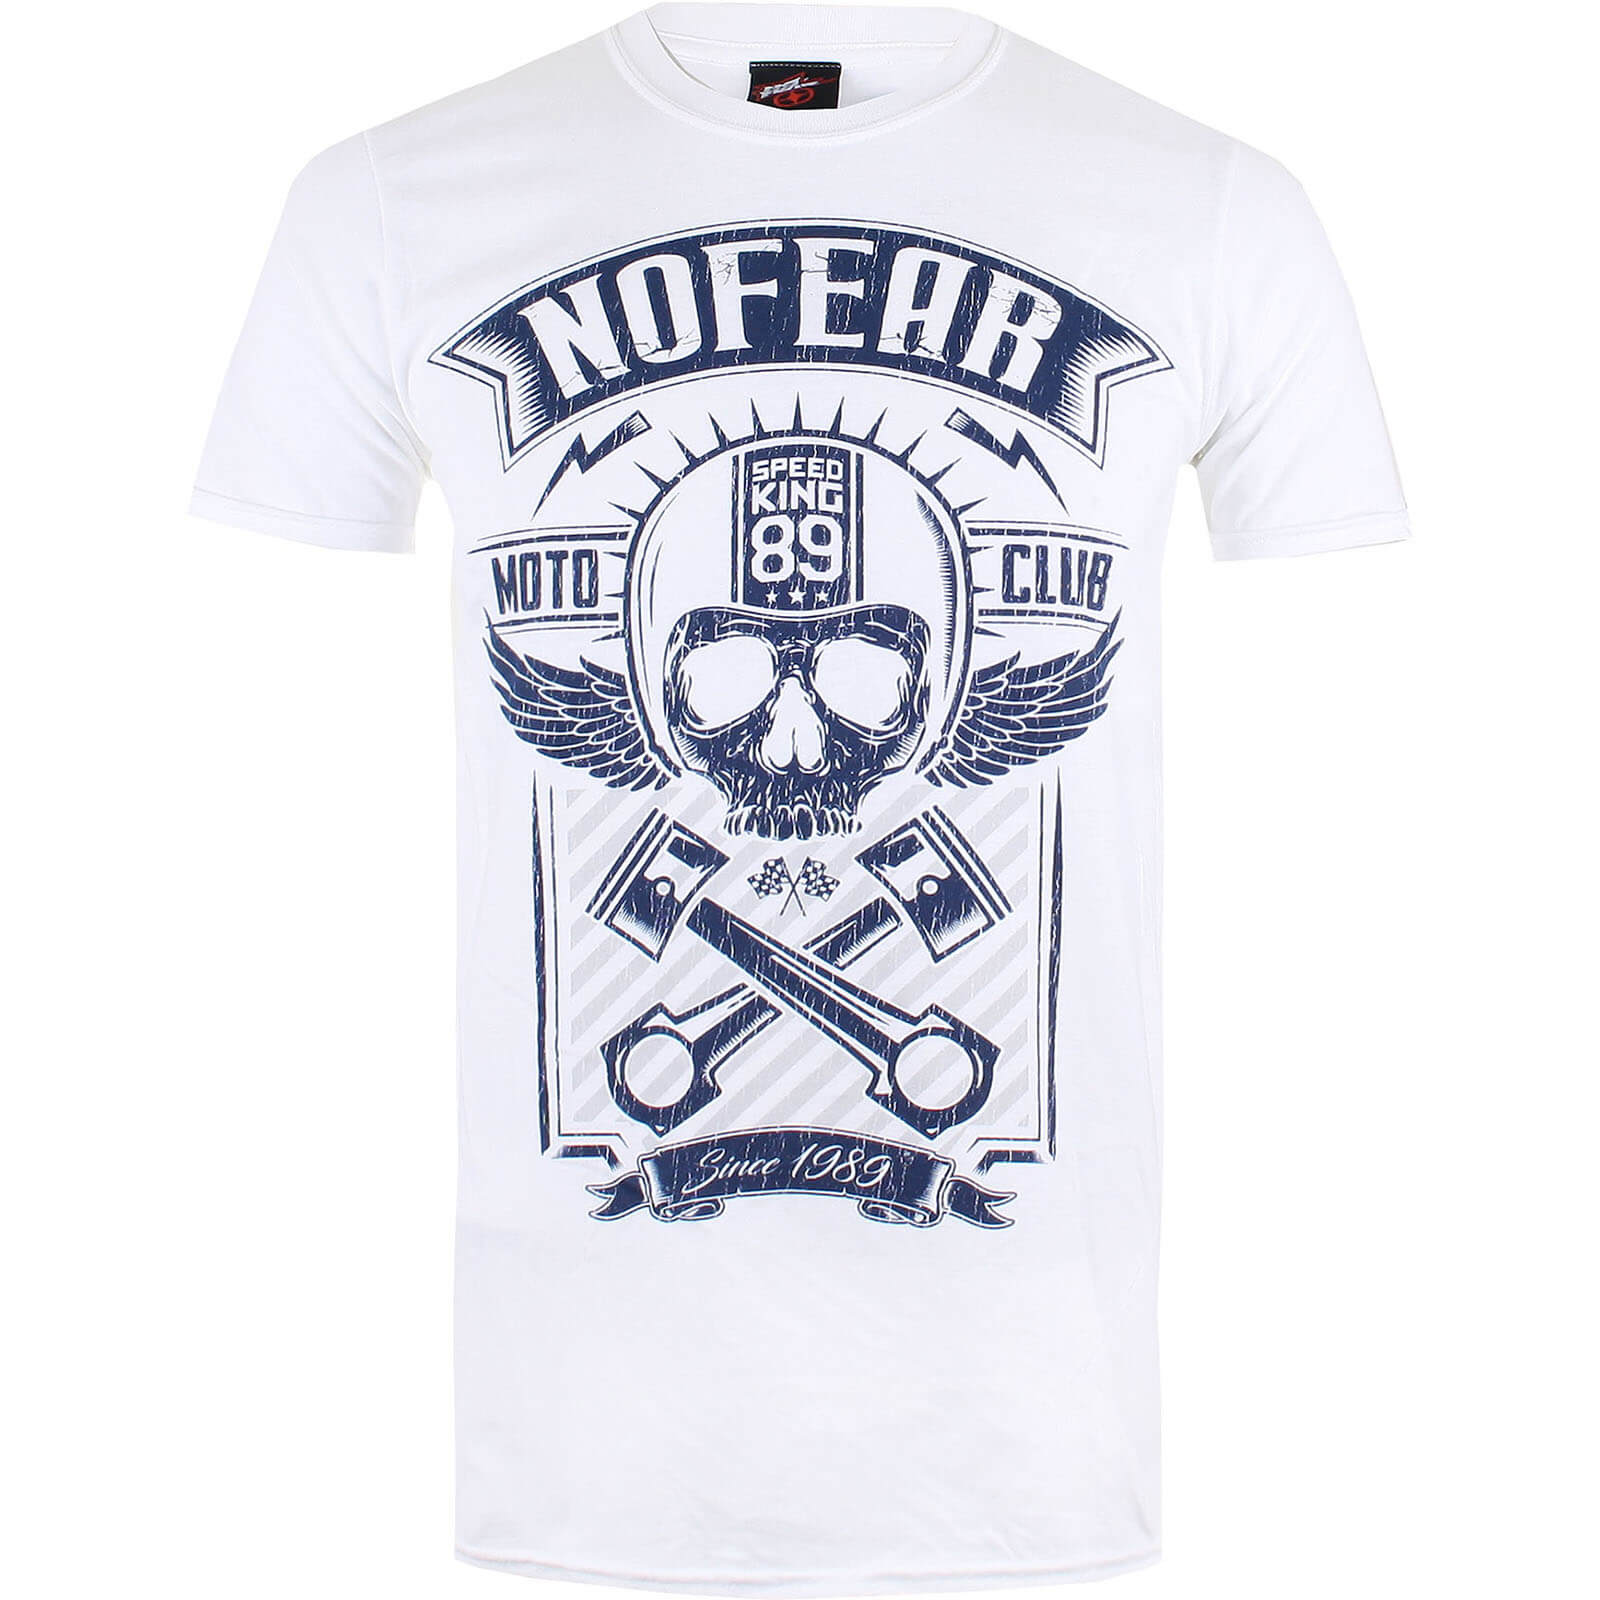 T-Shirt Homme No Fear - Blanc